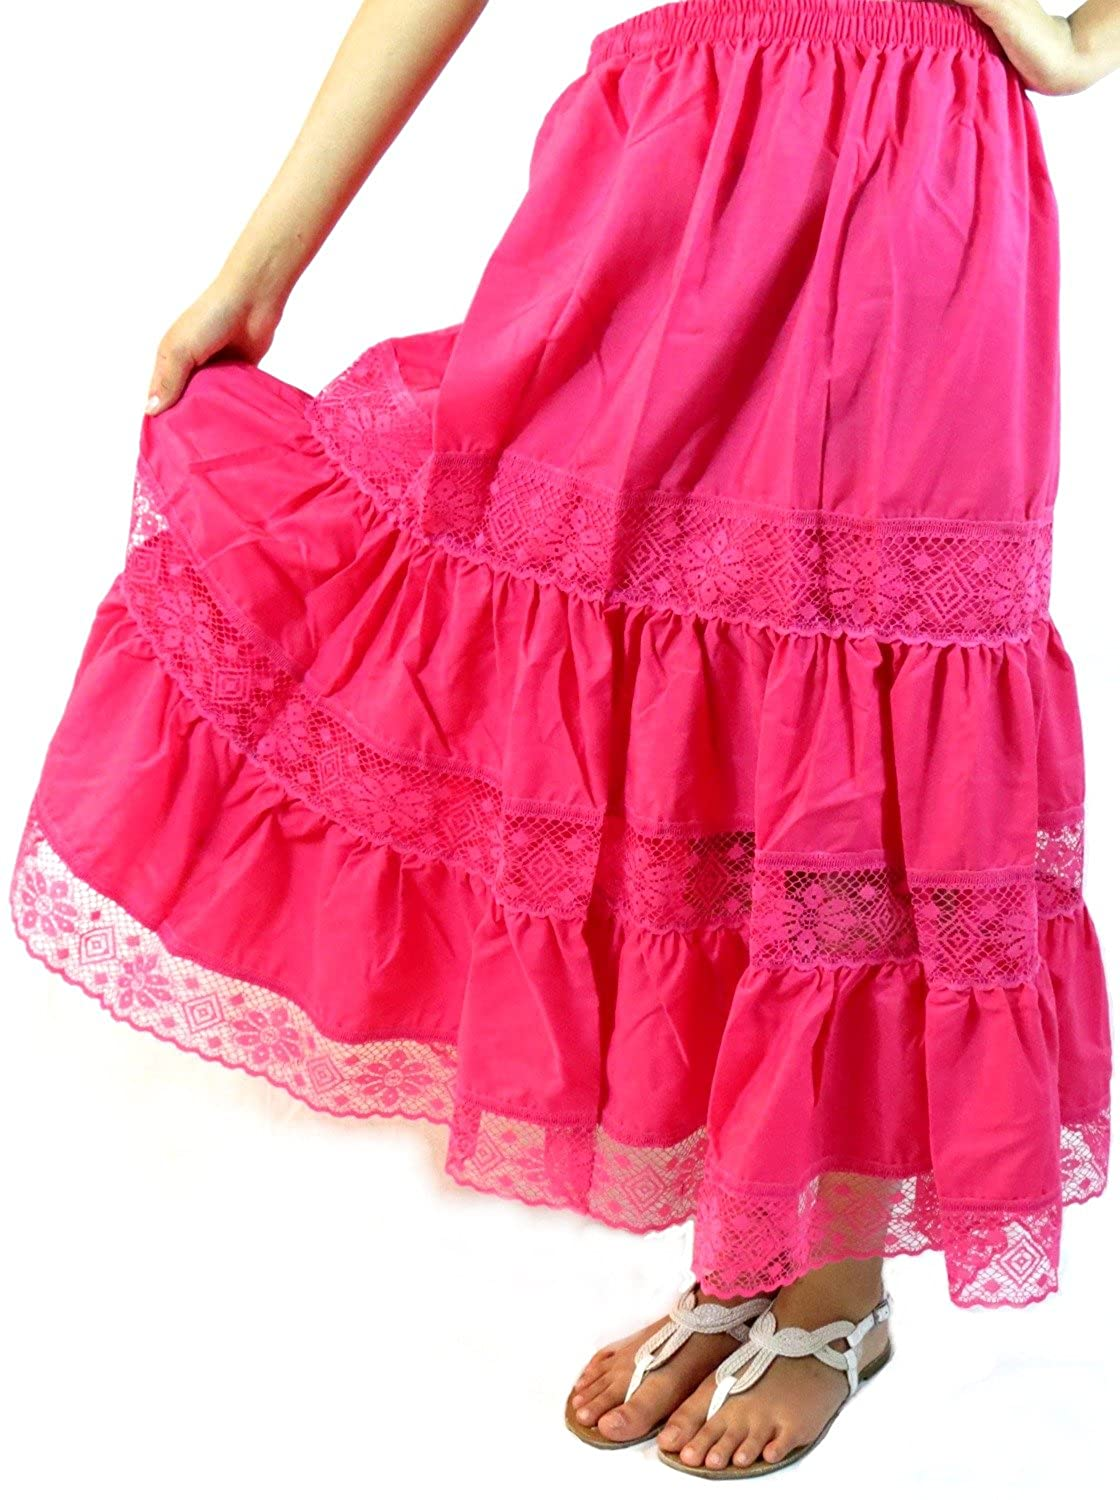 Women's Pink Cotton Mexican Lace Skirt - DeluxeAdultCostumes.com